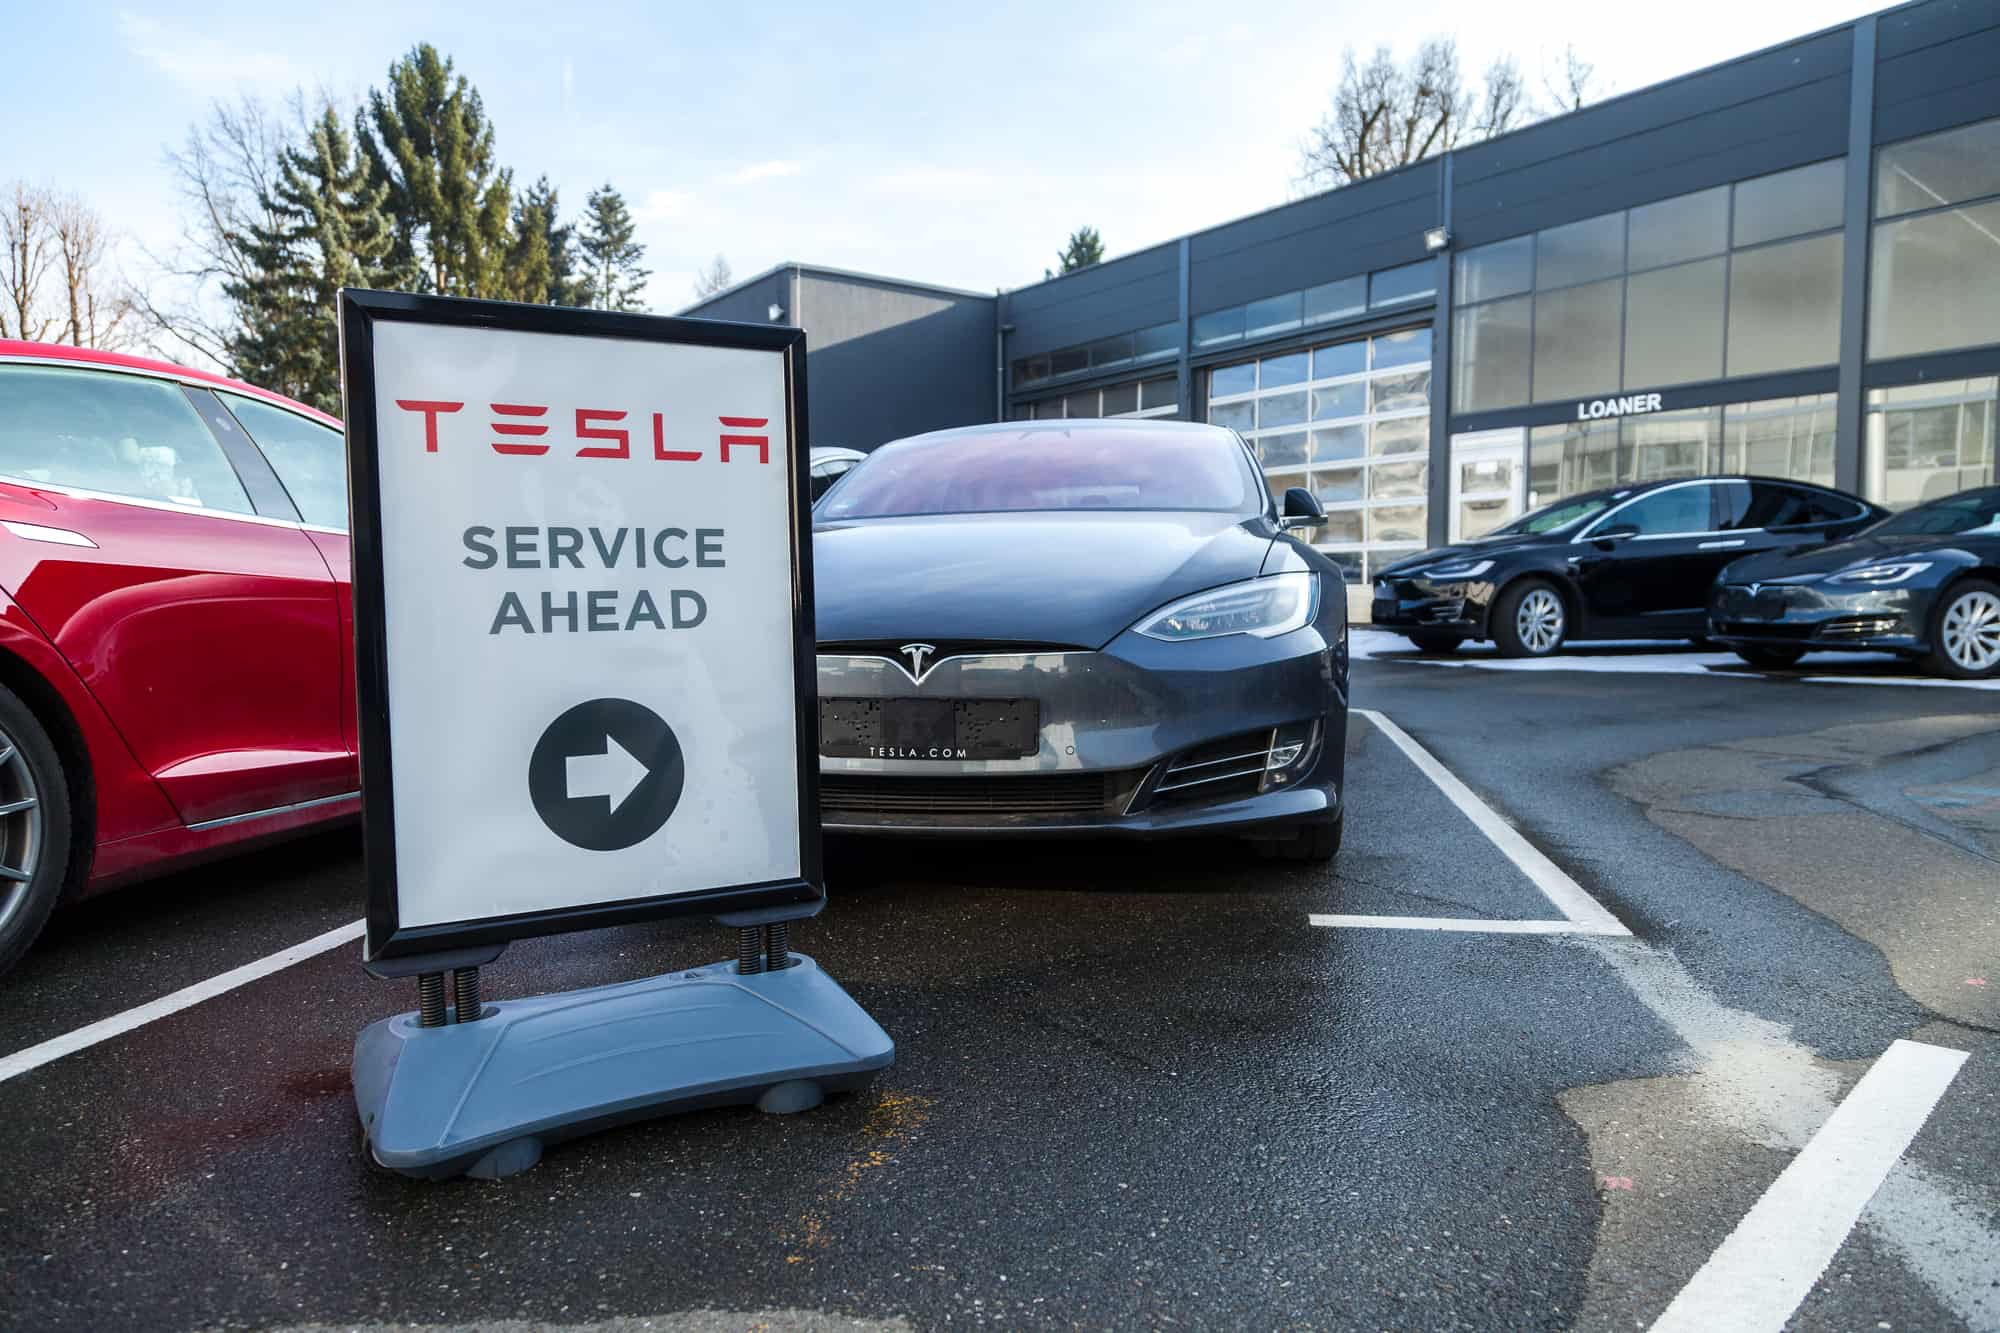 Tesla service ahead sign outside a dealership in Germany